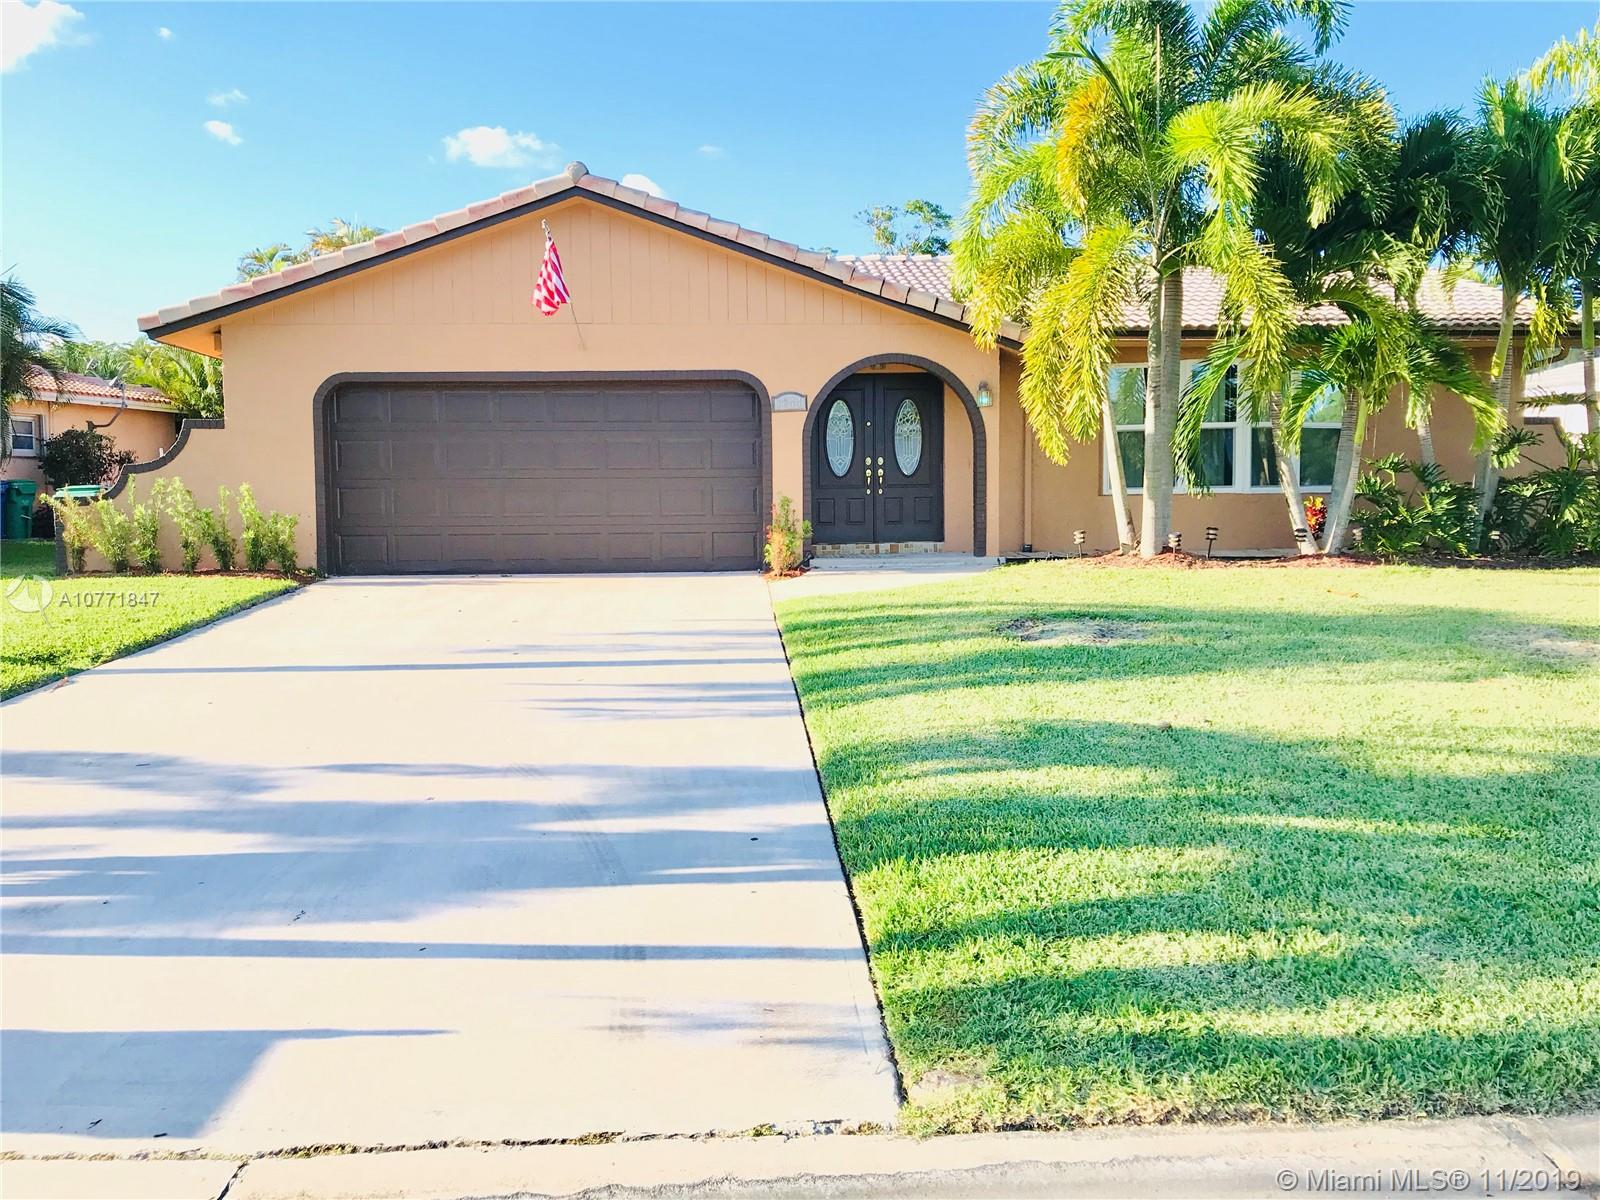 Immaculate, spacious and great starter home in the hearth of Coral Springs, come and bring your personal touch to this lovely one story single family house with 3 bedroom, 2 bathrooms (1 cabana bath), wood burning fireplace. Enjoy a gourmet kitchen with pool view, double oven, custom cabinets, stainless steel appliances, granite countertops. This home also features build in bar, 2 car garage, huge driveway, impact windows, shutters, beautiful pool, patio, and pool area to entertain.  Dont miss this great opportunity of enjoying this home in the quiet Ramblewood Community, close to restaurants, malls and excellent schools.